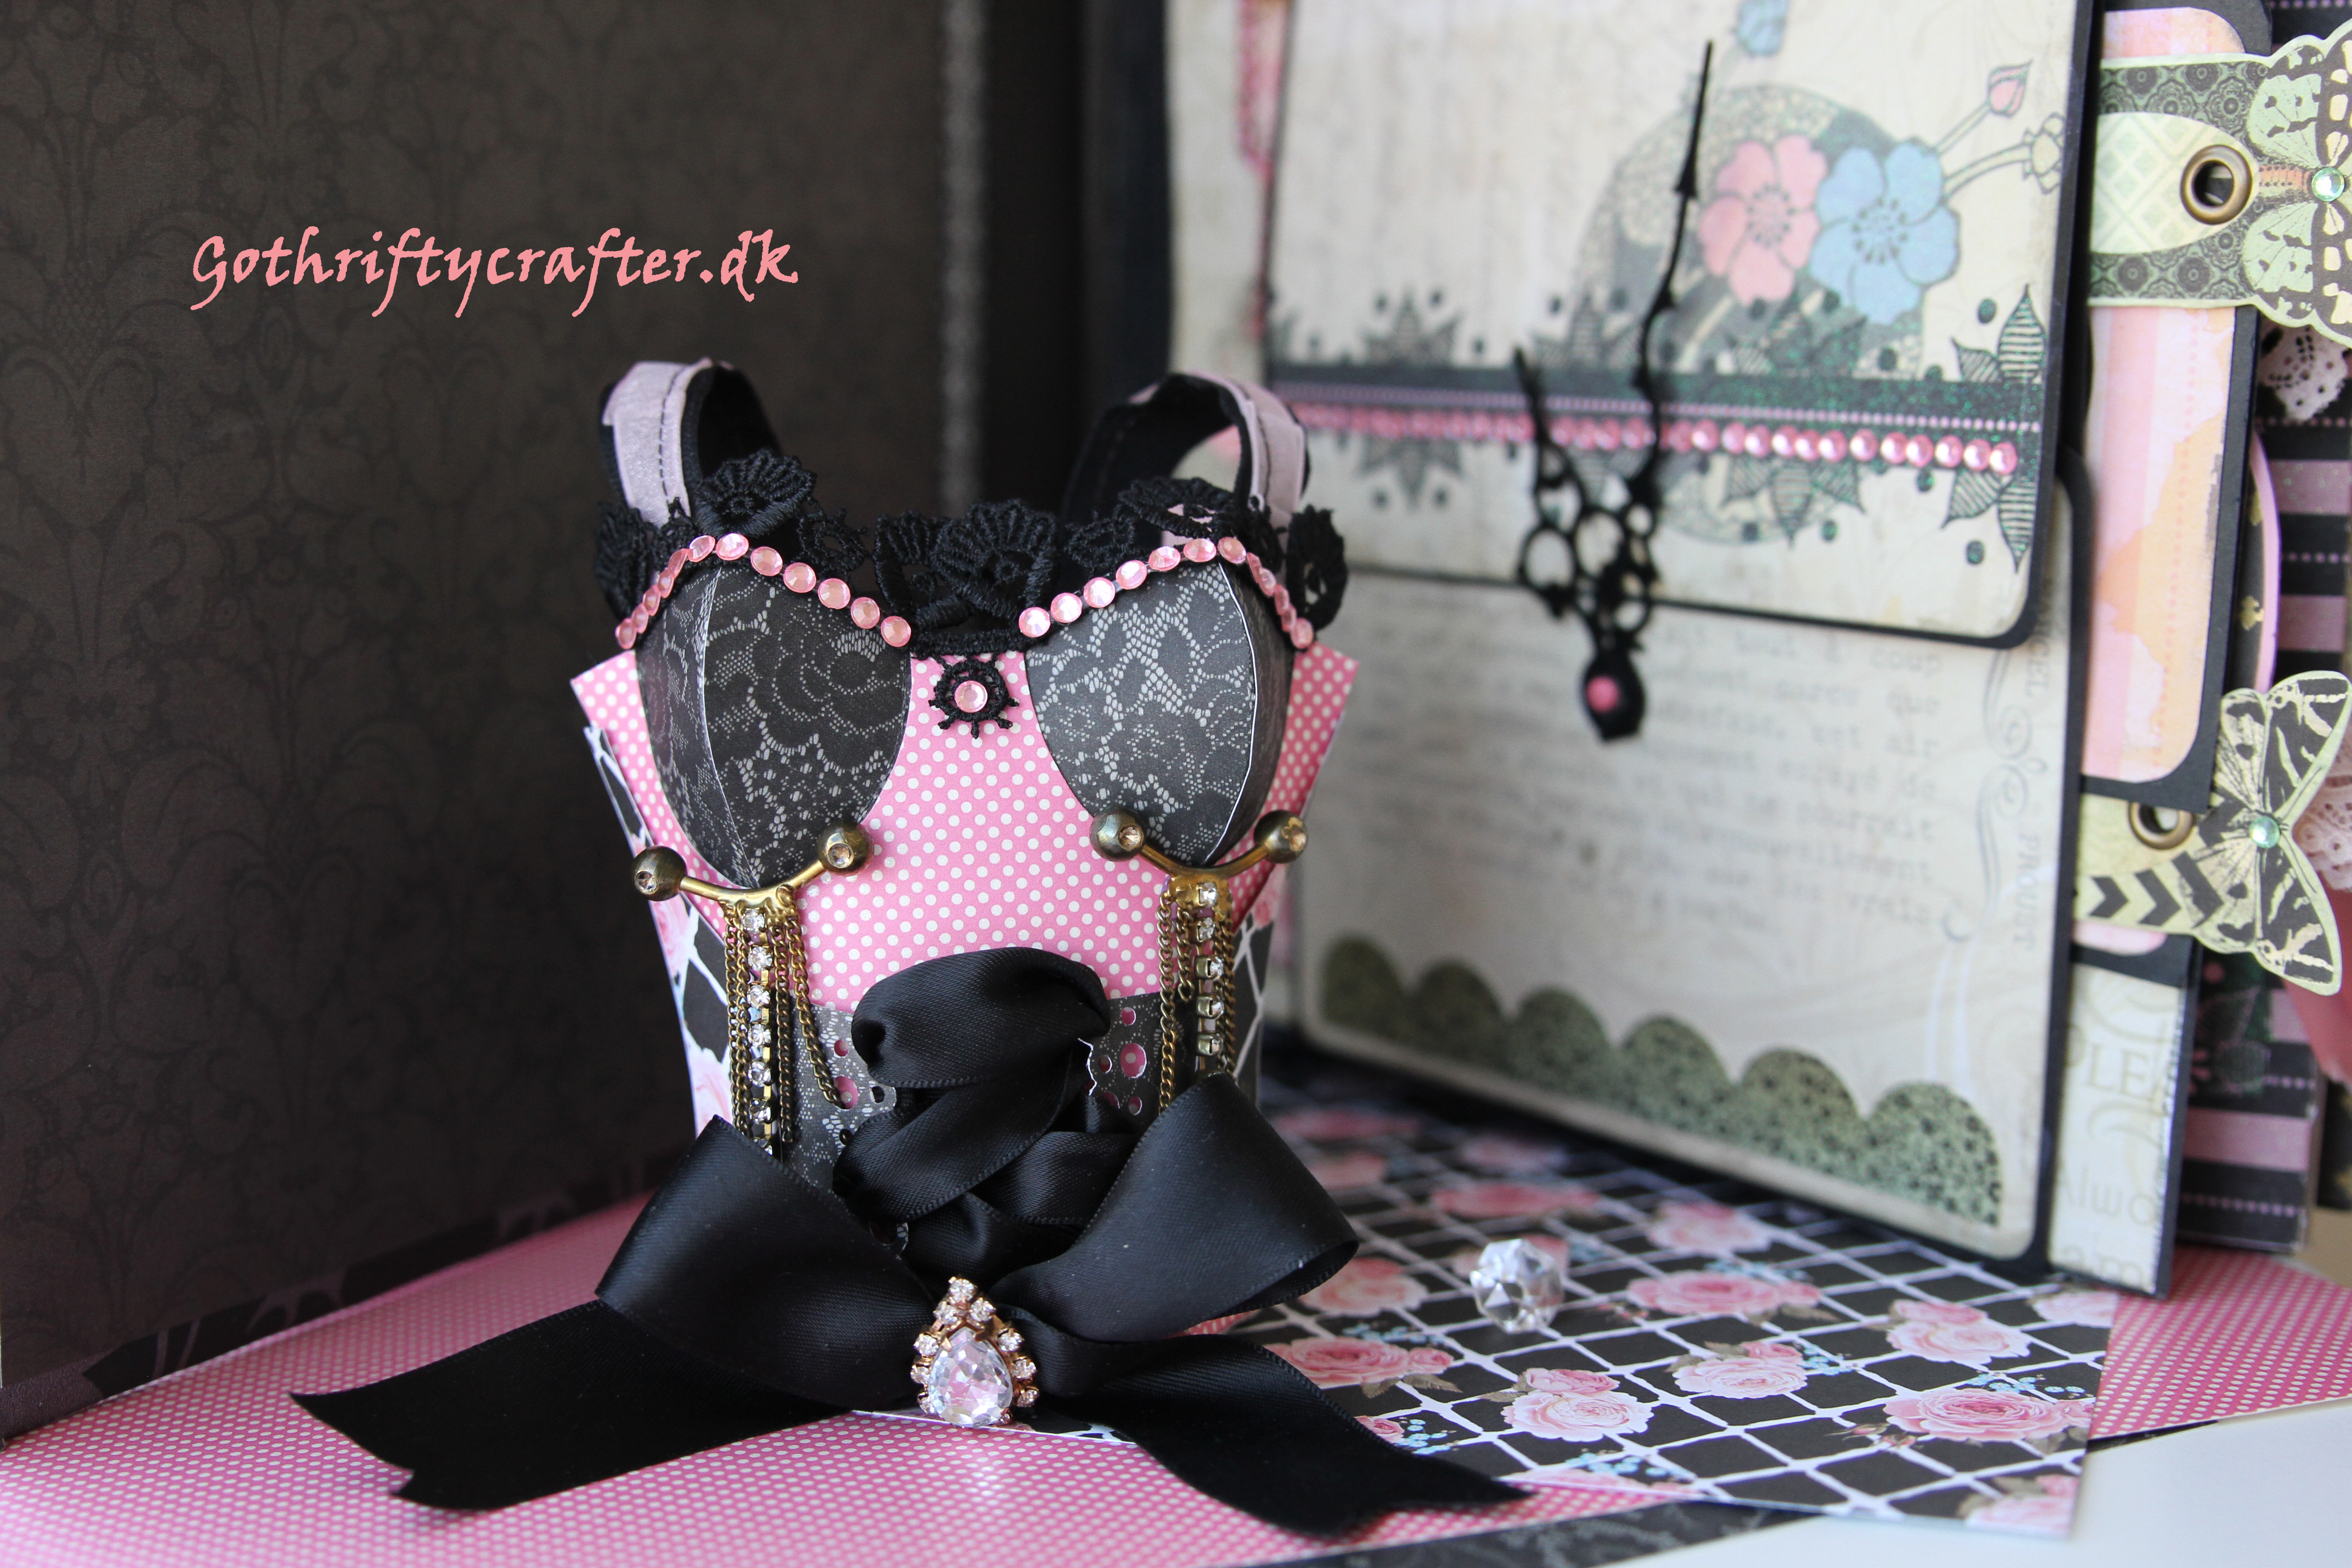 Gothriftycrafter corset bustier gift bag scrapbooking card french moulin rouge side album watch hands Fabrika DecoruJPG